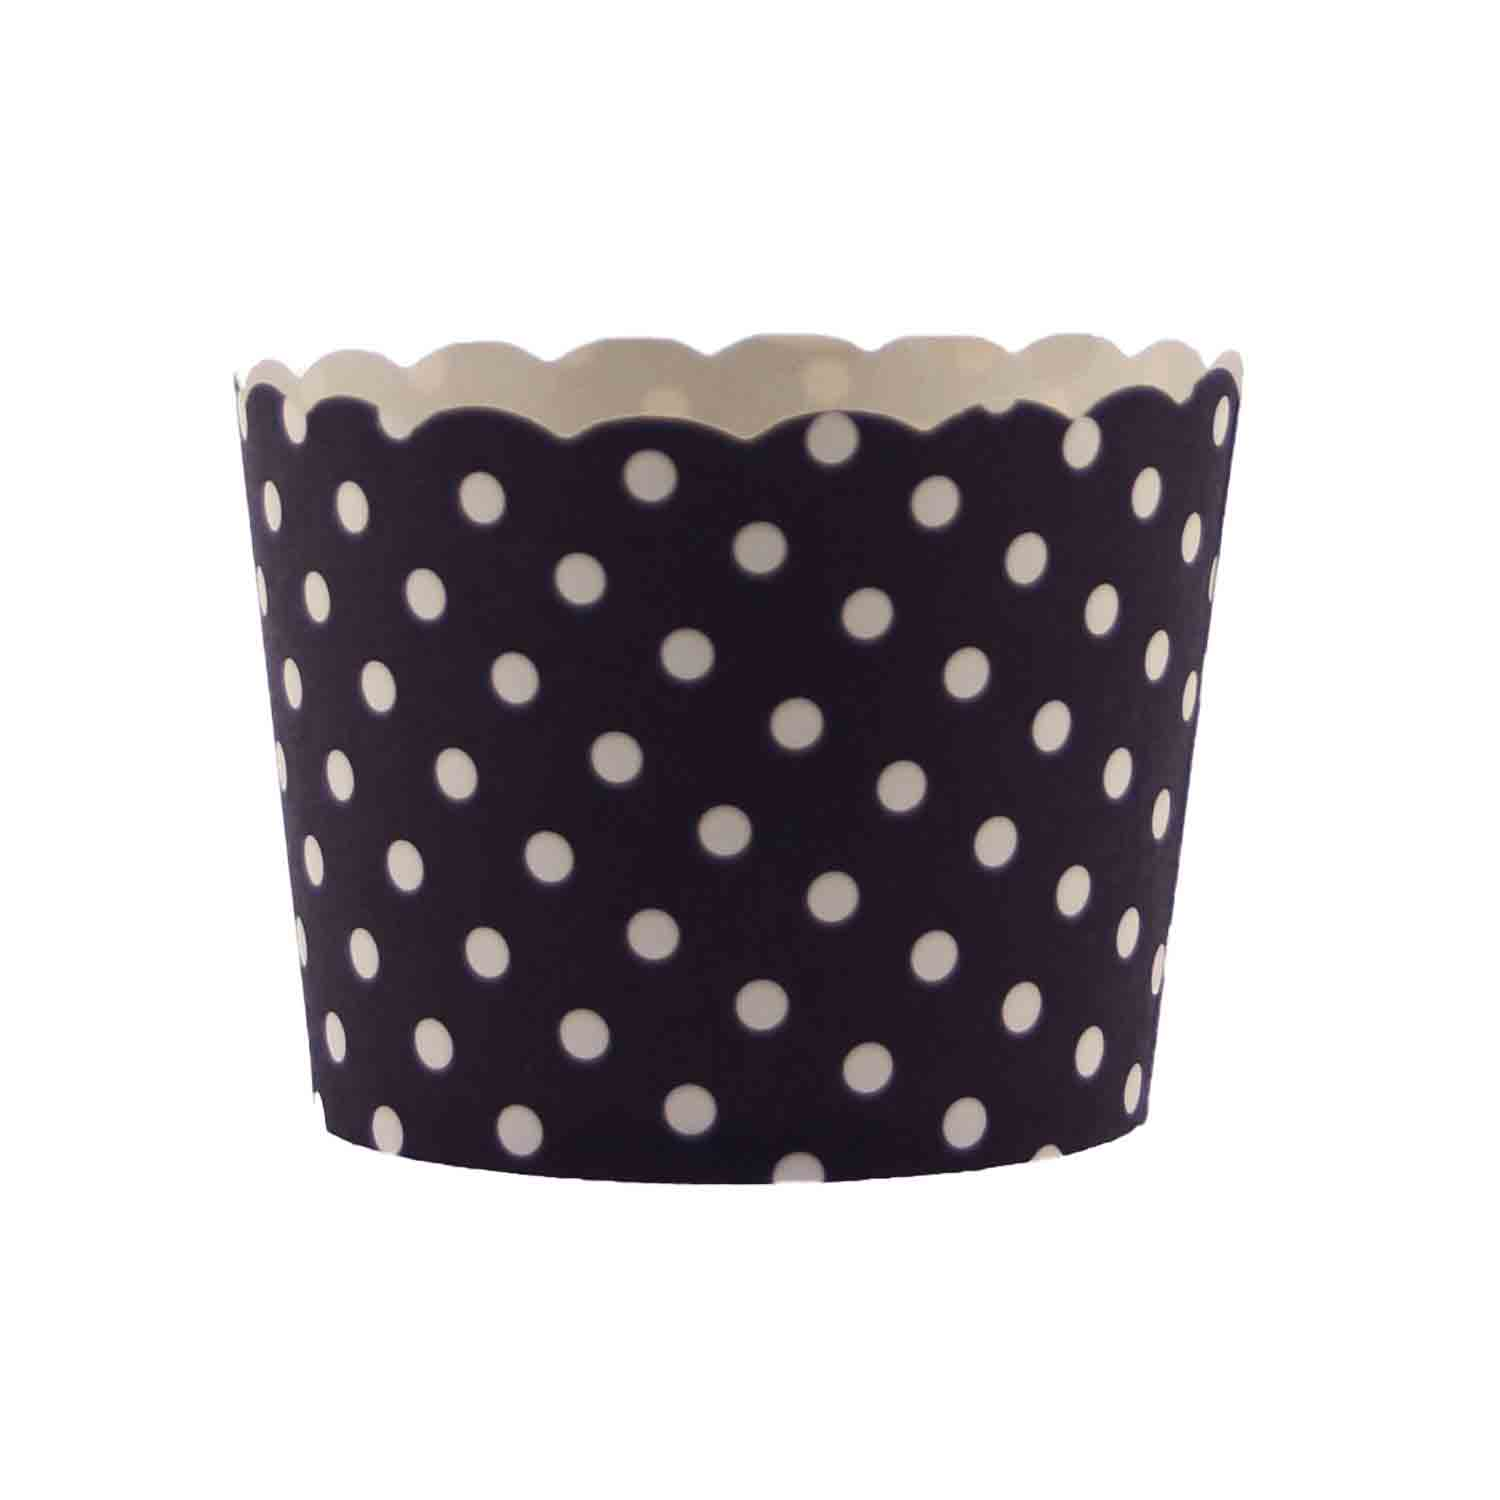 Black Polka Dot Bake In Cups - Small